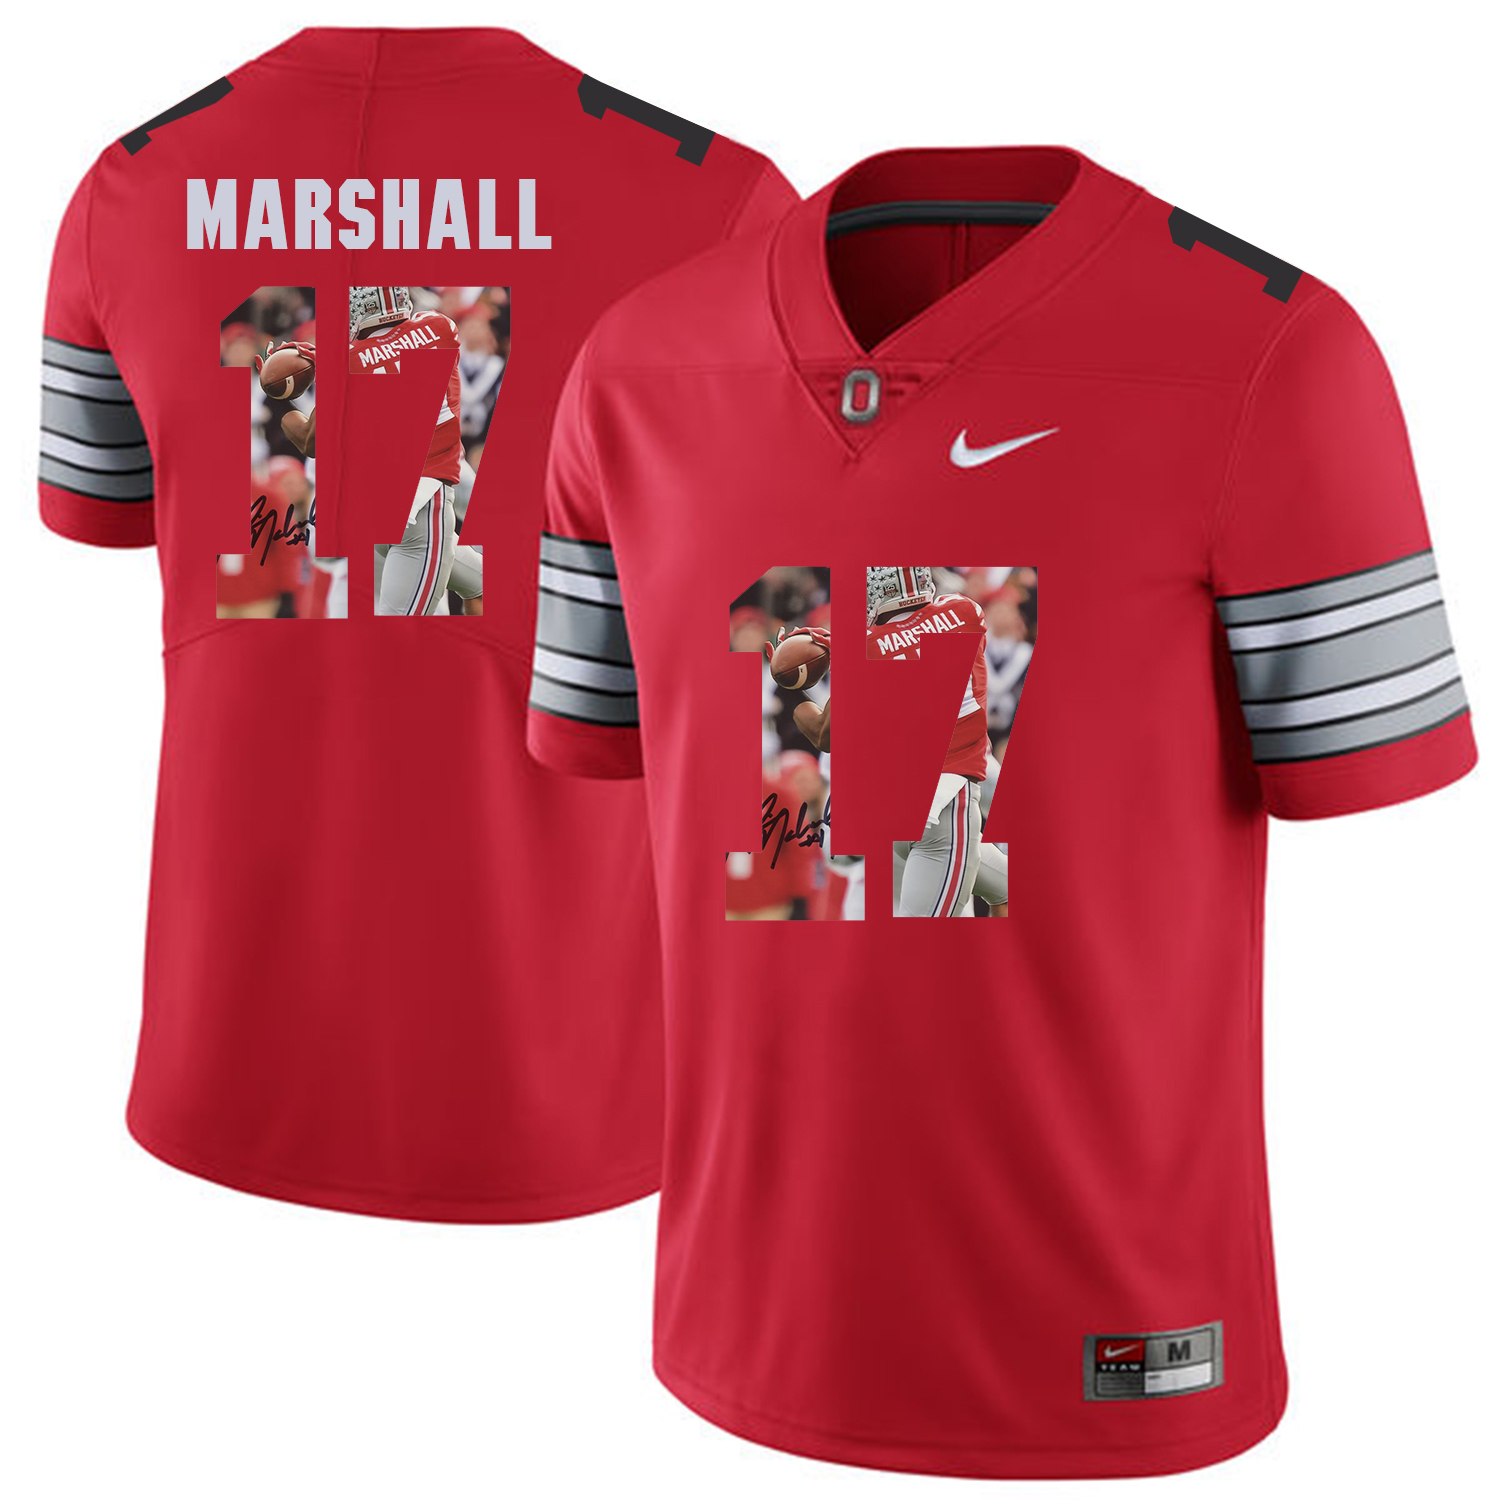 Men Ohio State 17 Marshall Red Fashion Edition Customized NCAA Jerseys